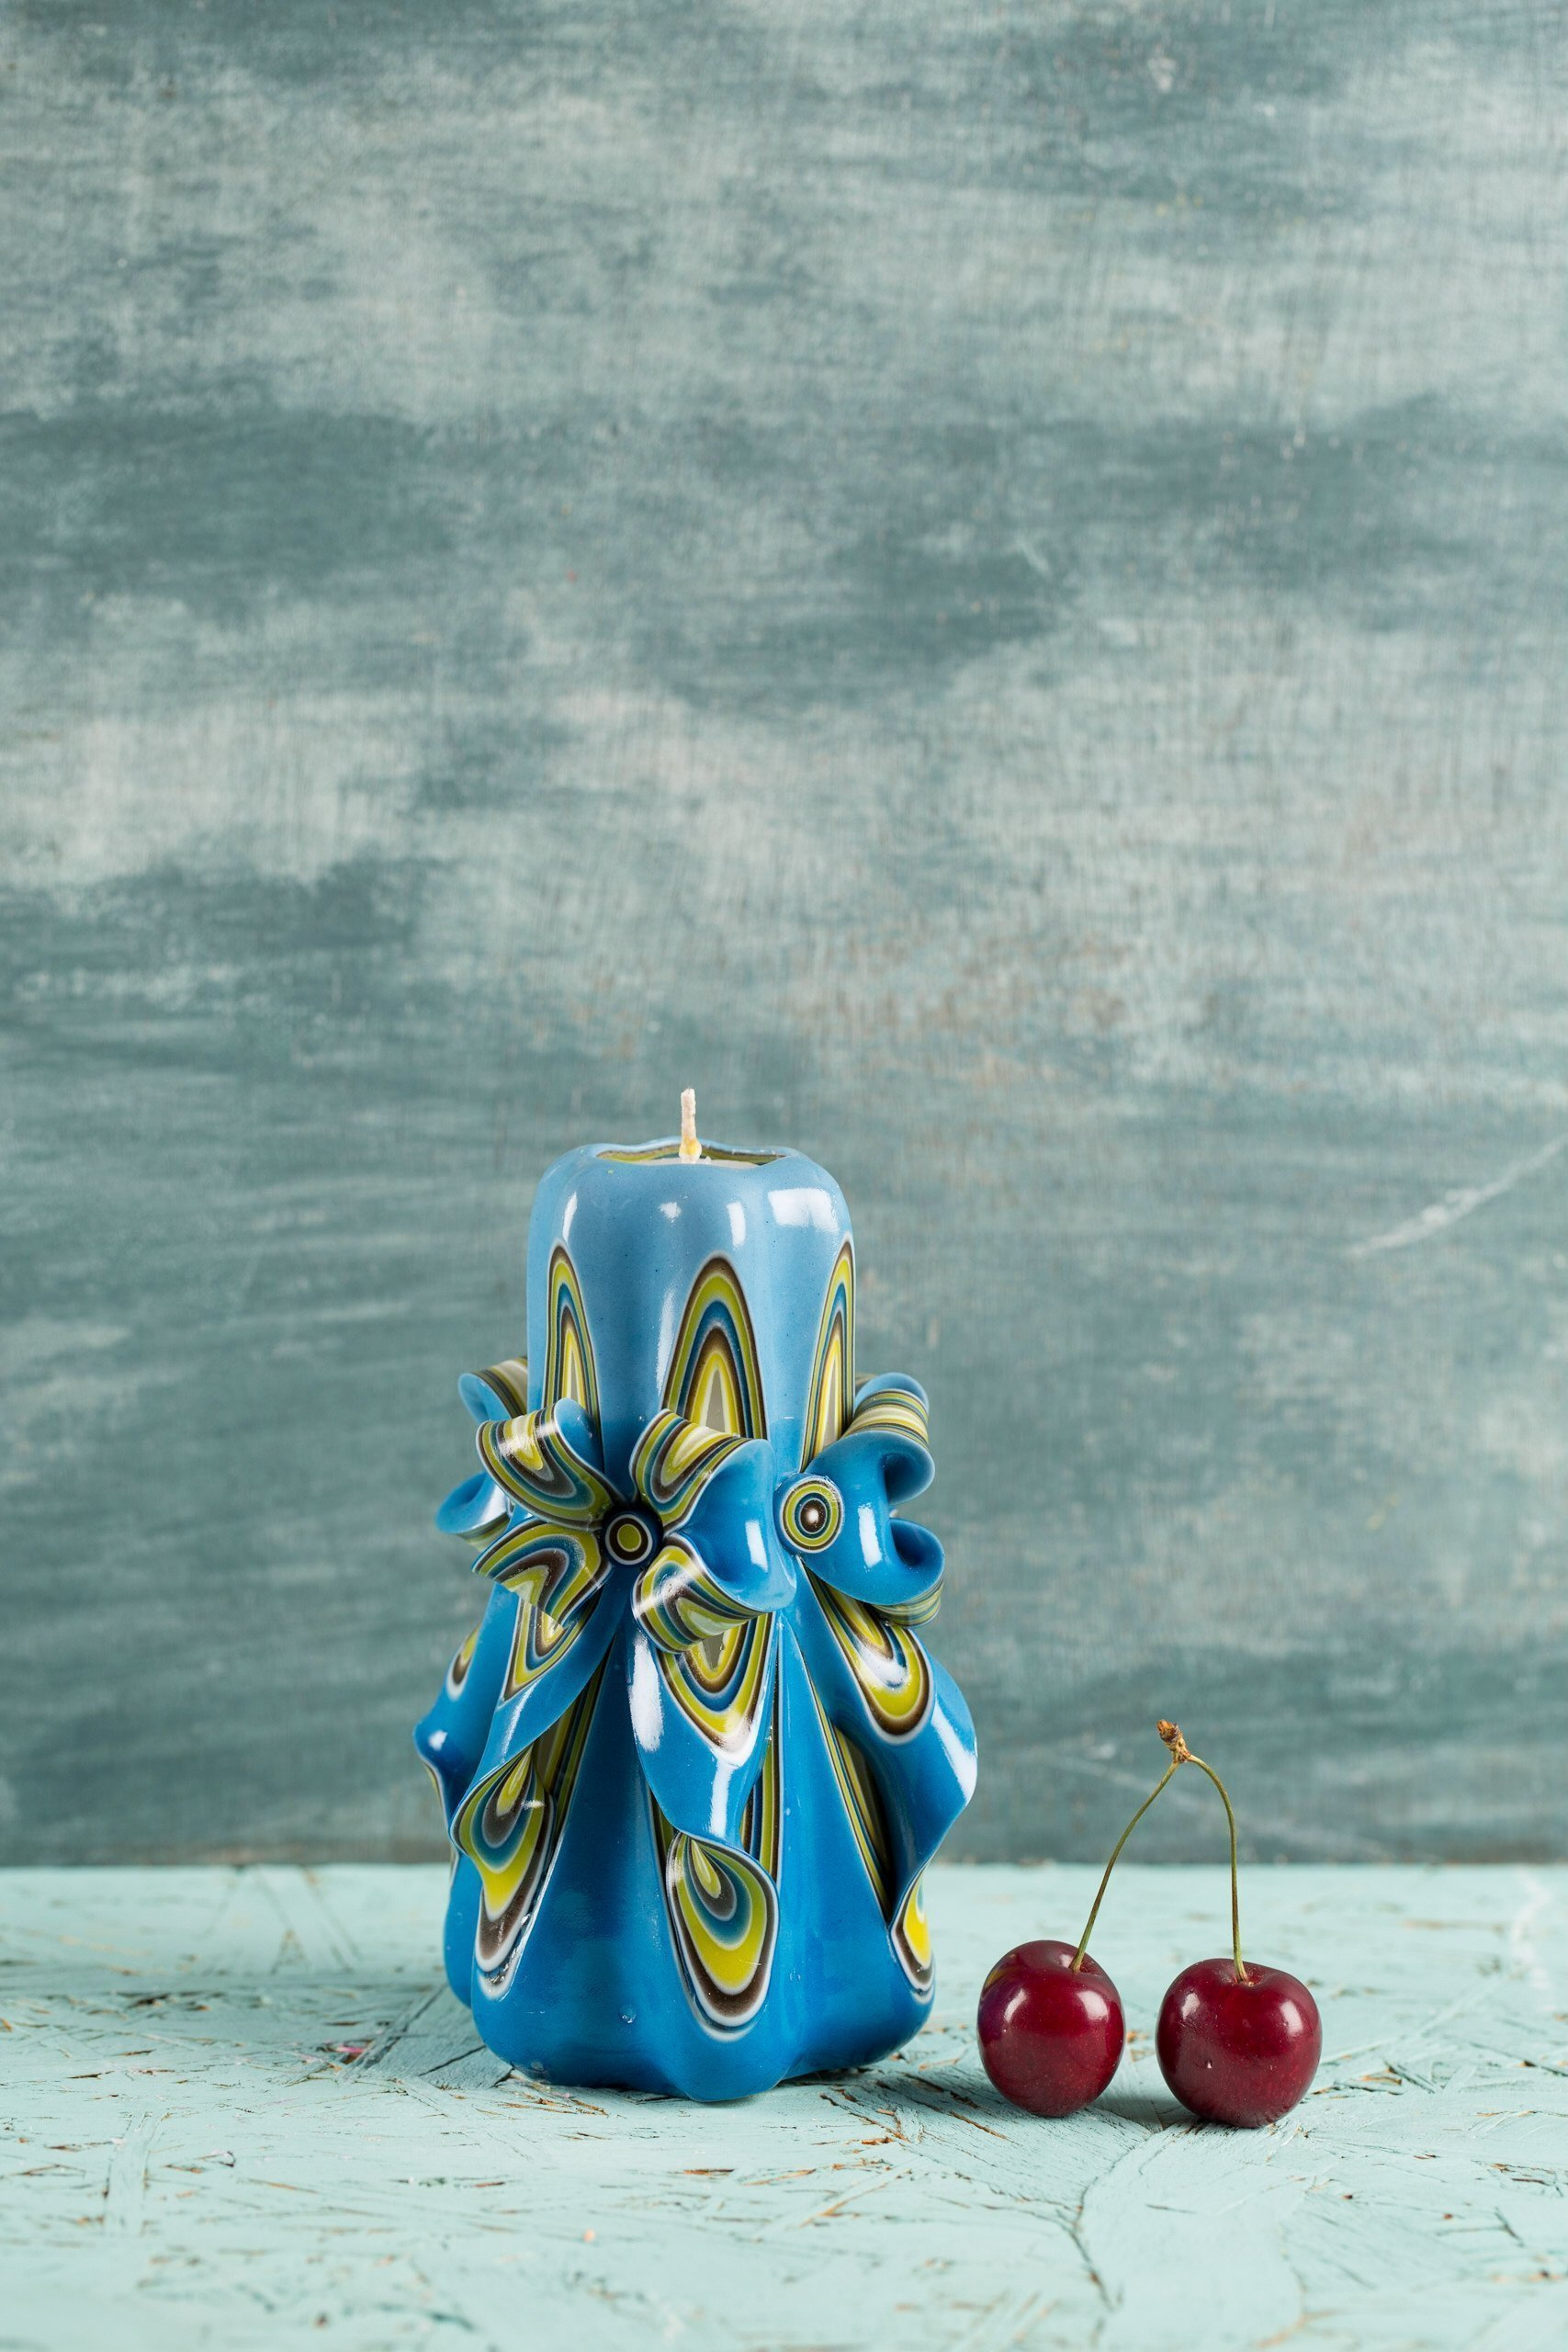 Candle set - Blue and Yellow - Bright colors - Decorative carved candle - EveCandles by EveCandles (Image #3)